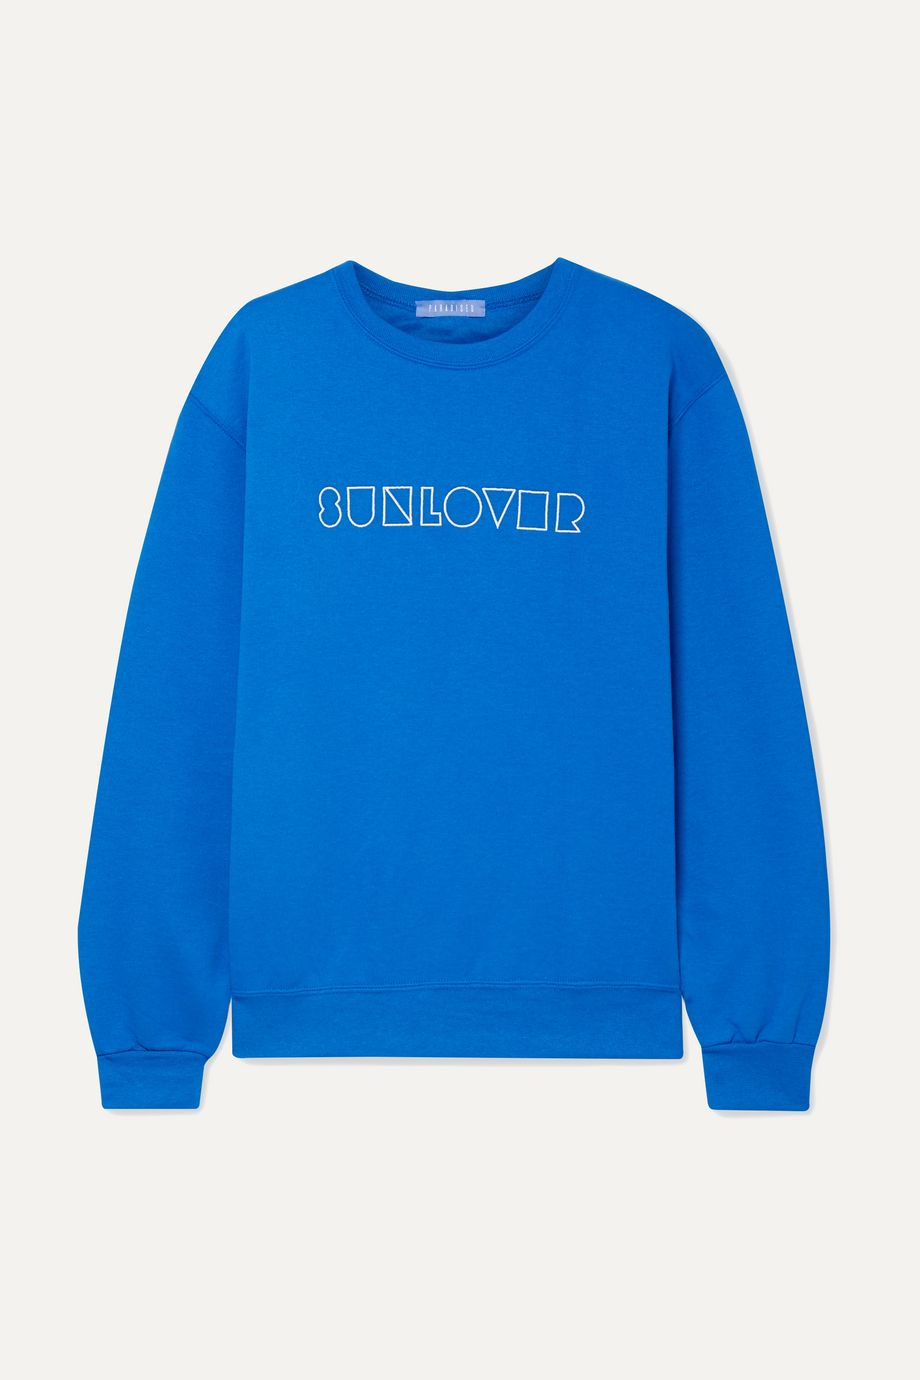 Paradised Sunlover embroidered cotton-blend jersey sweatshirt